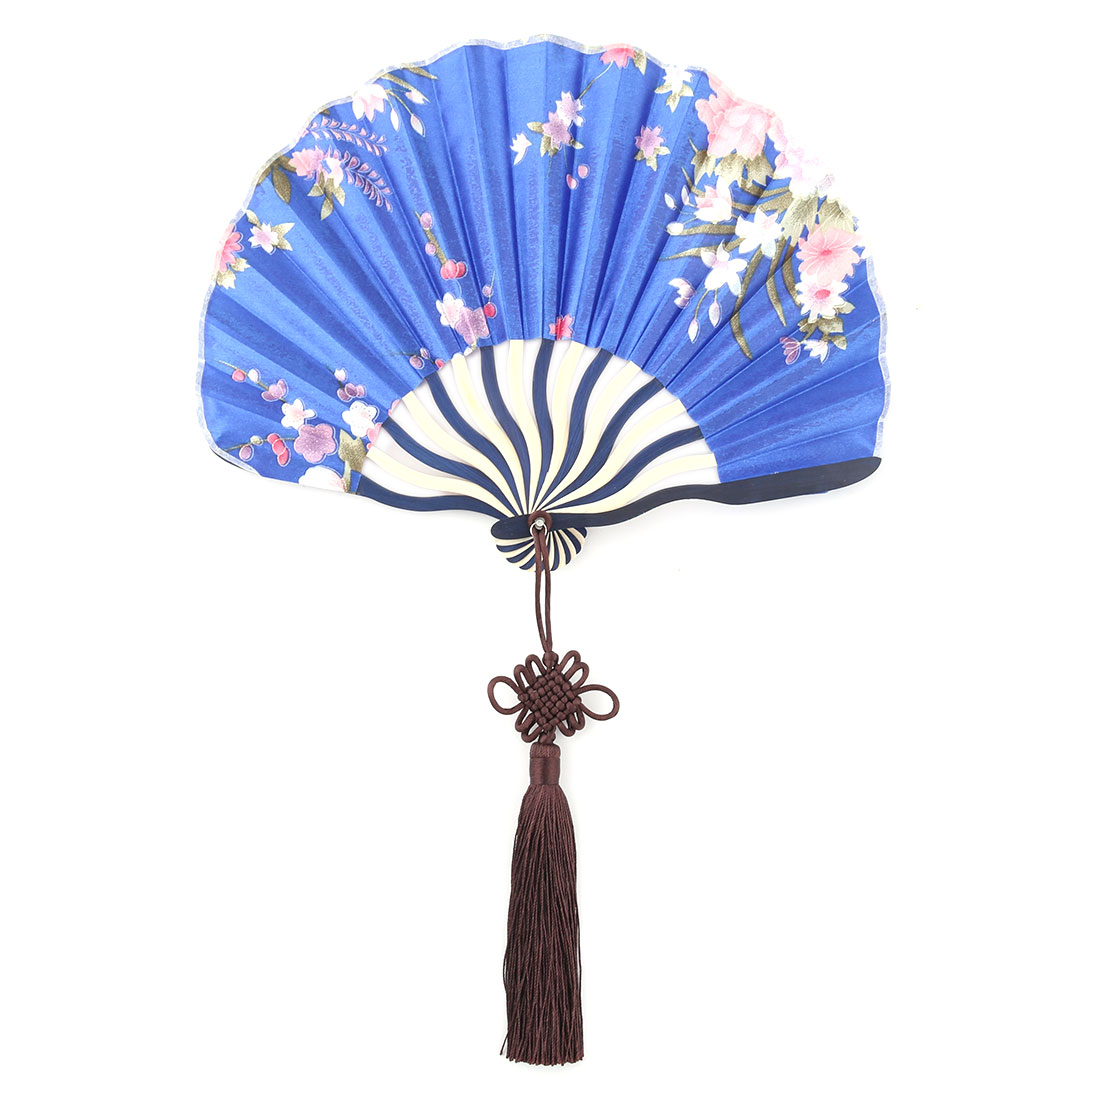 Bamboo Frame Flower Pattern Chinese Knot Tassel Decor Dancing Hand Fan Royal Blue